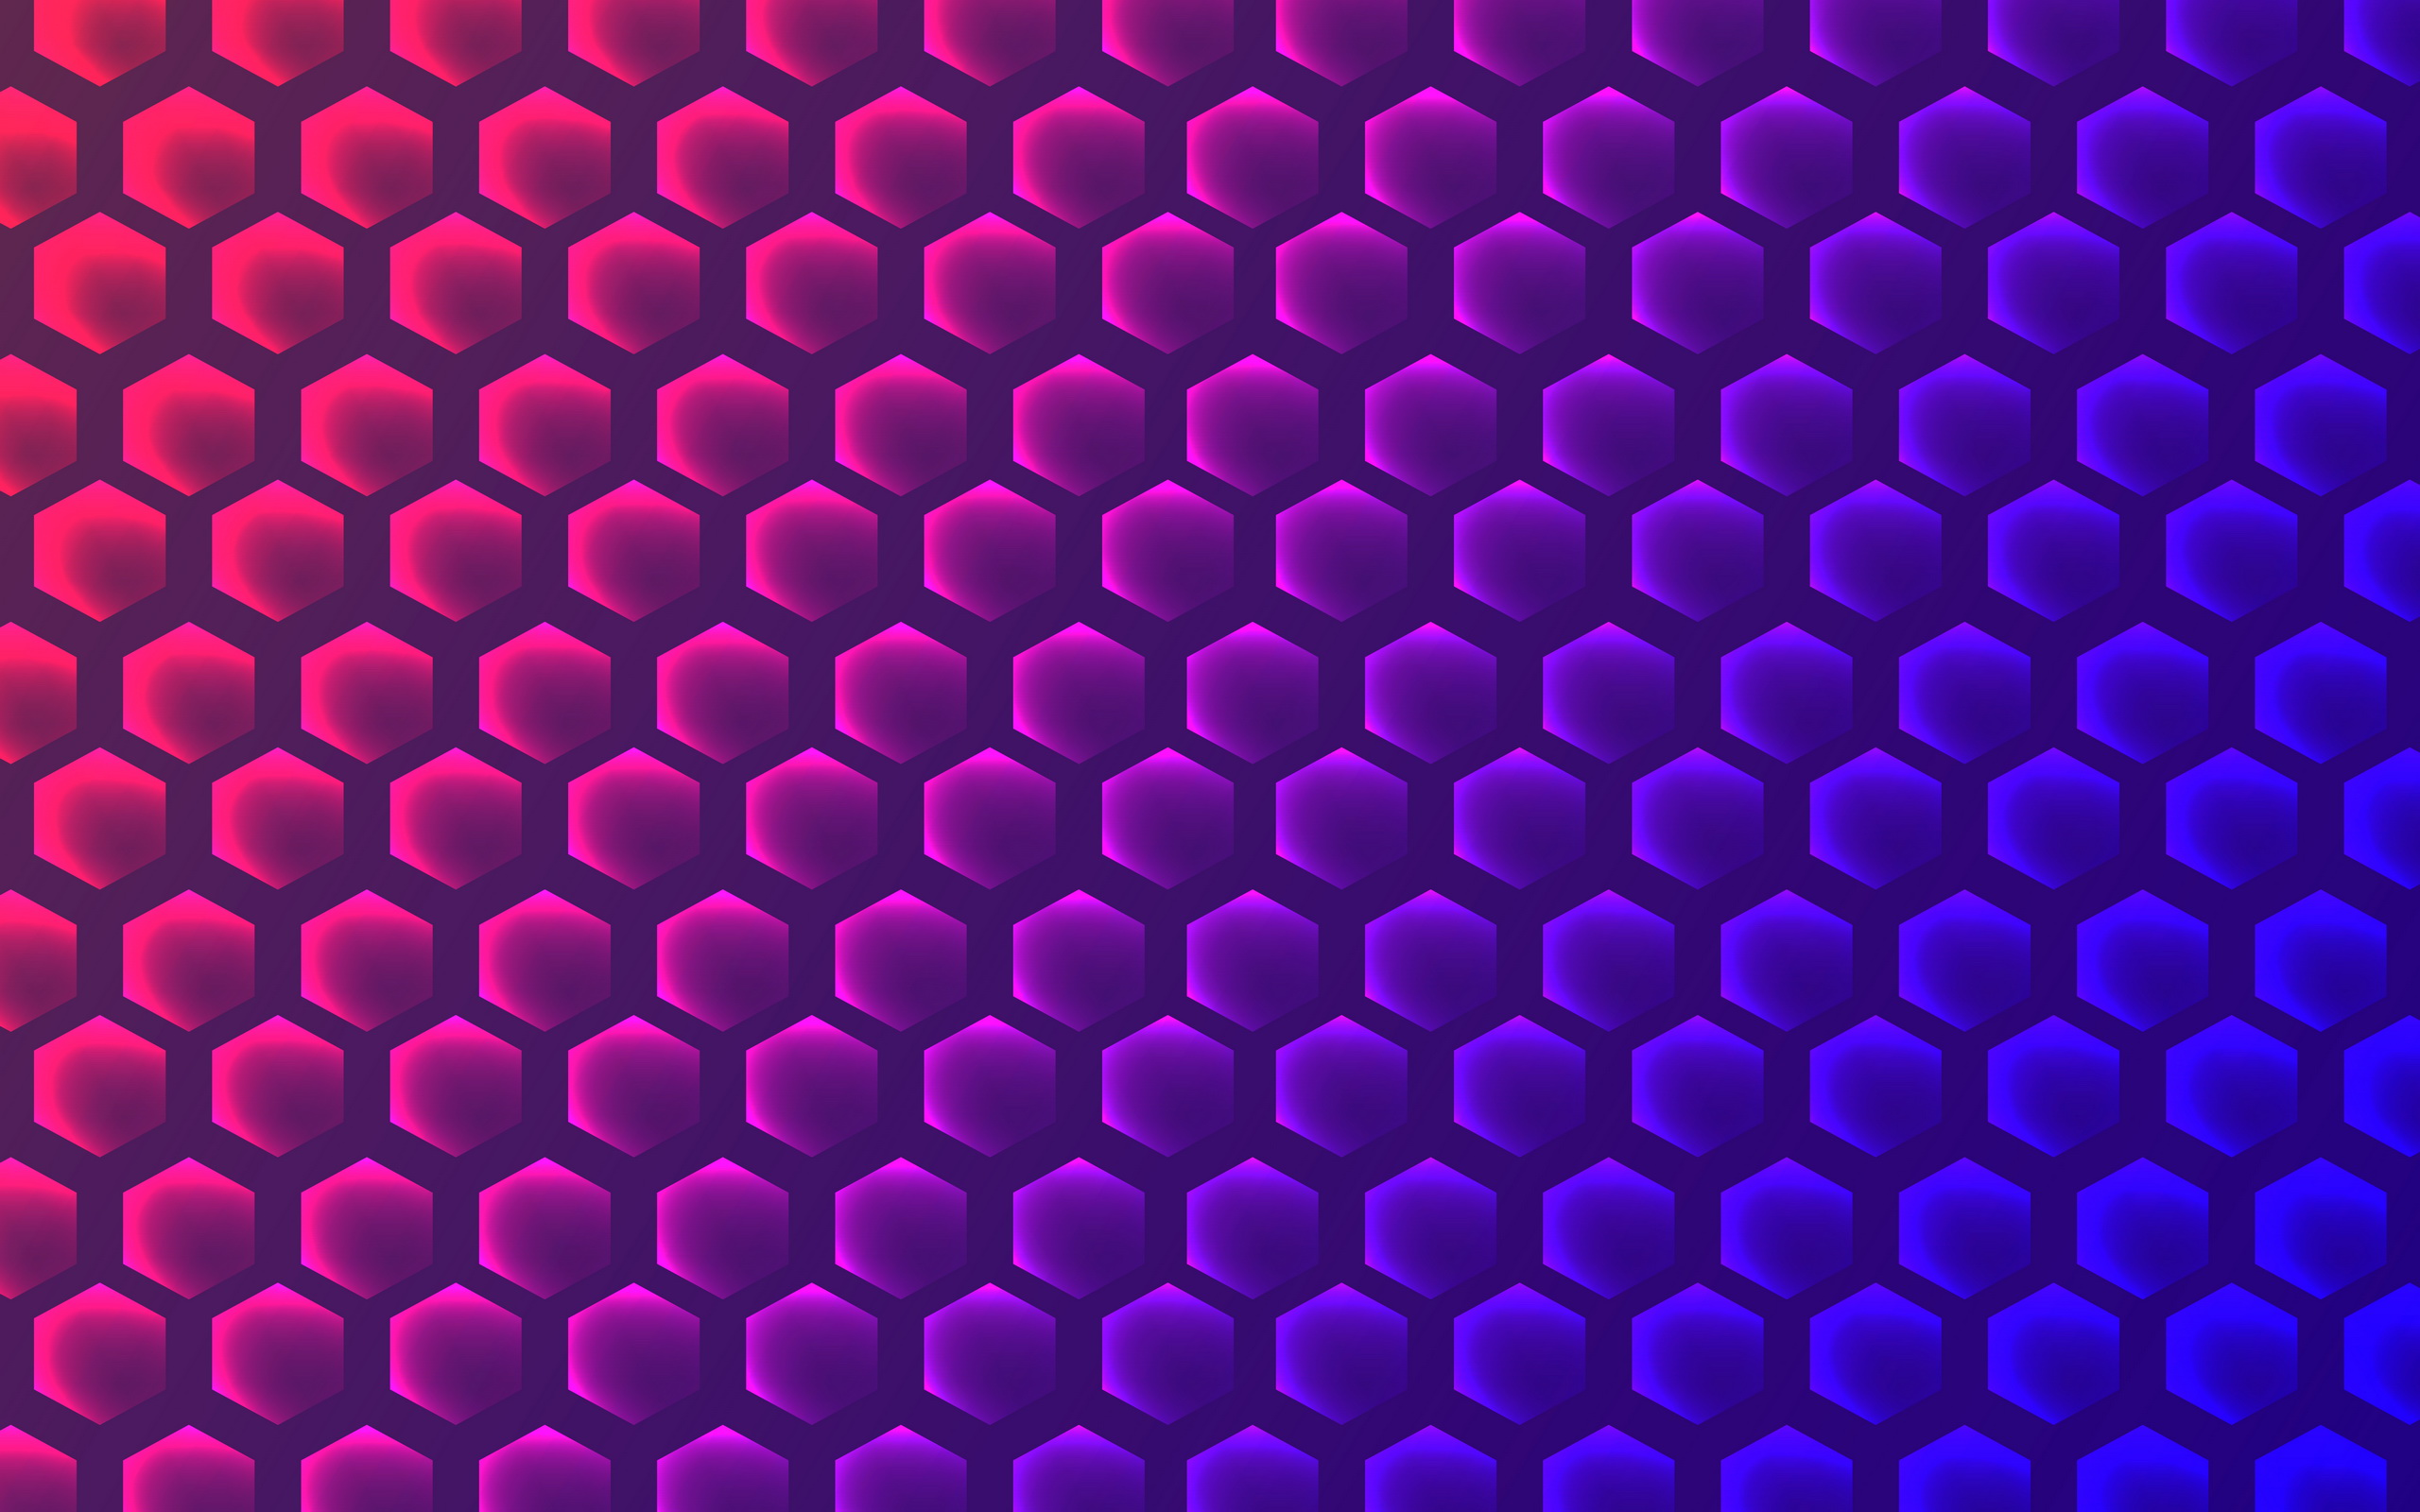 Hexagon Wallpapers Pictures Images